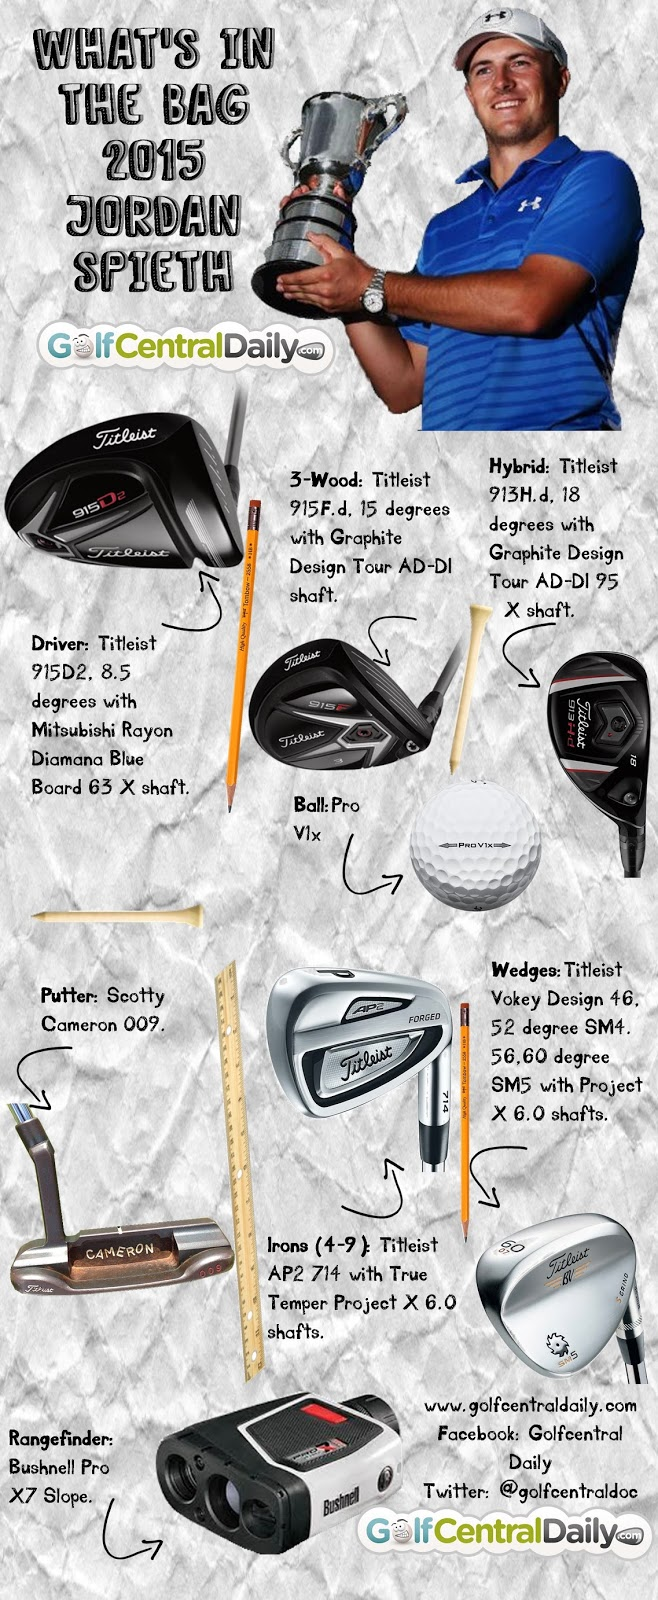 e596dc3a3d Jordan Spieth What's In The Bag 2015. Infographic - GolfCentralDaily ...